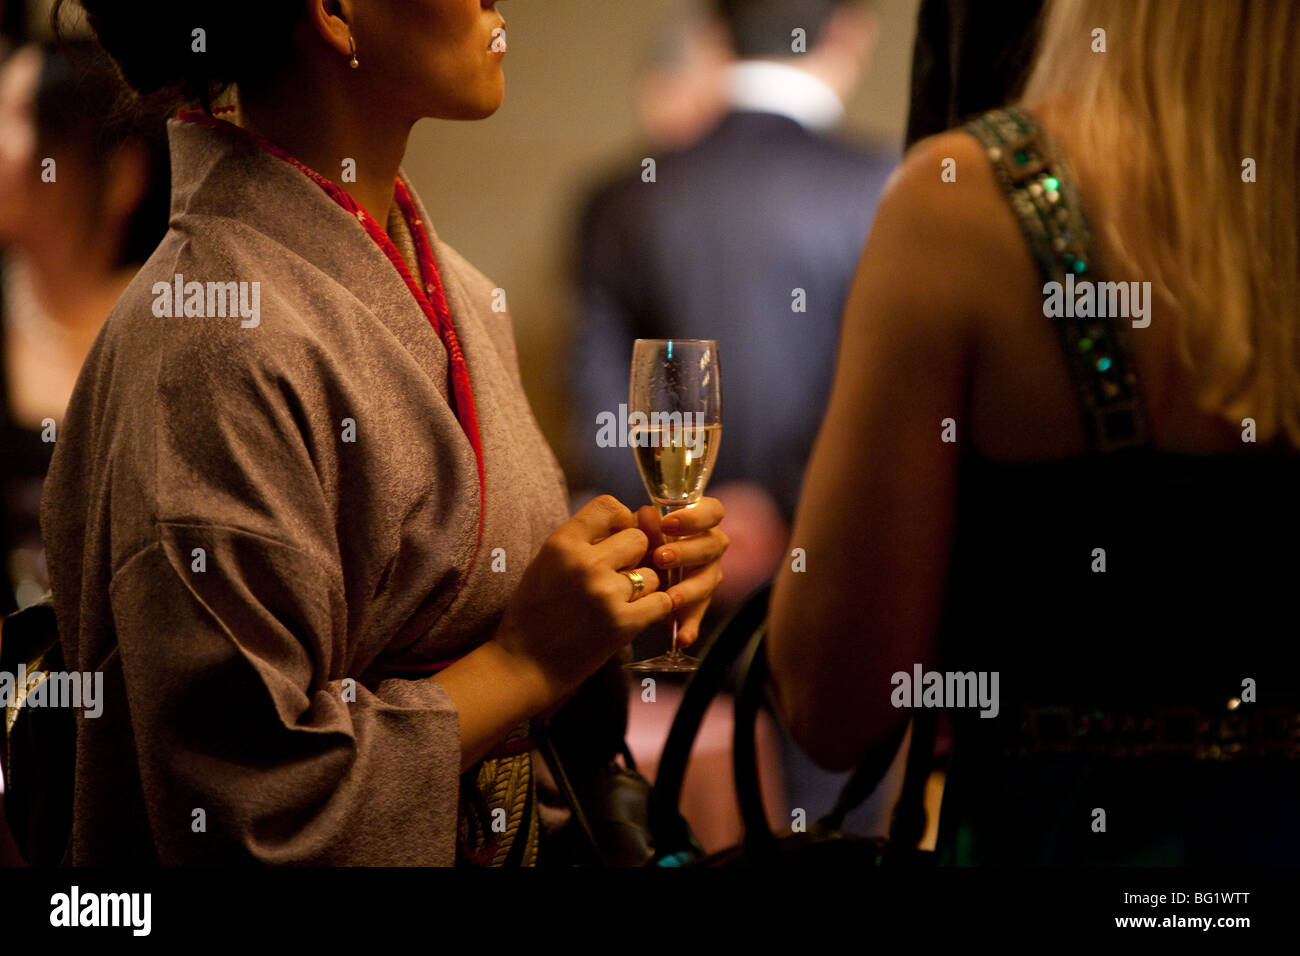 Japanese woman in kimono drinking champagne. - Stock Image